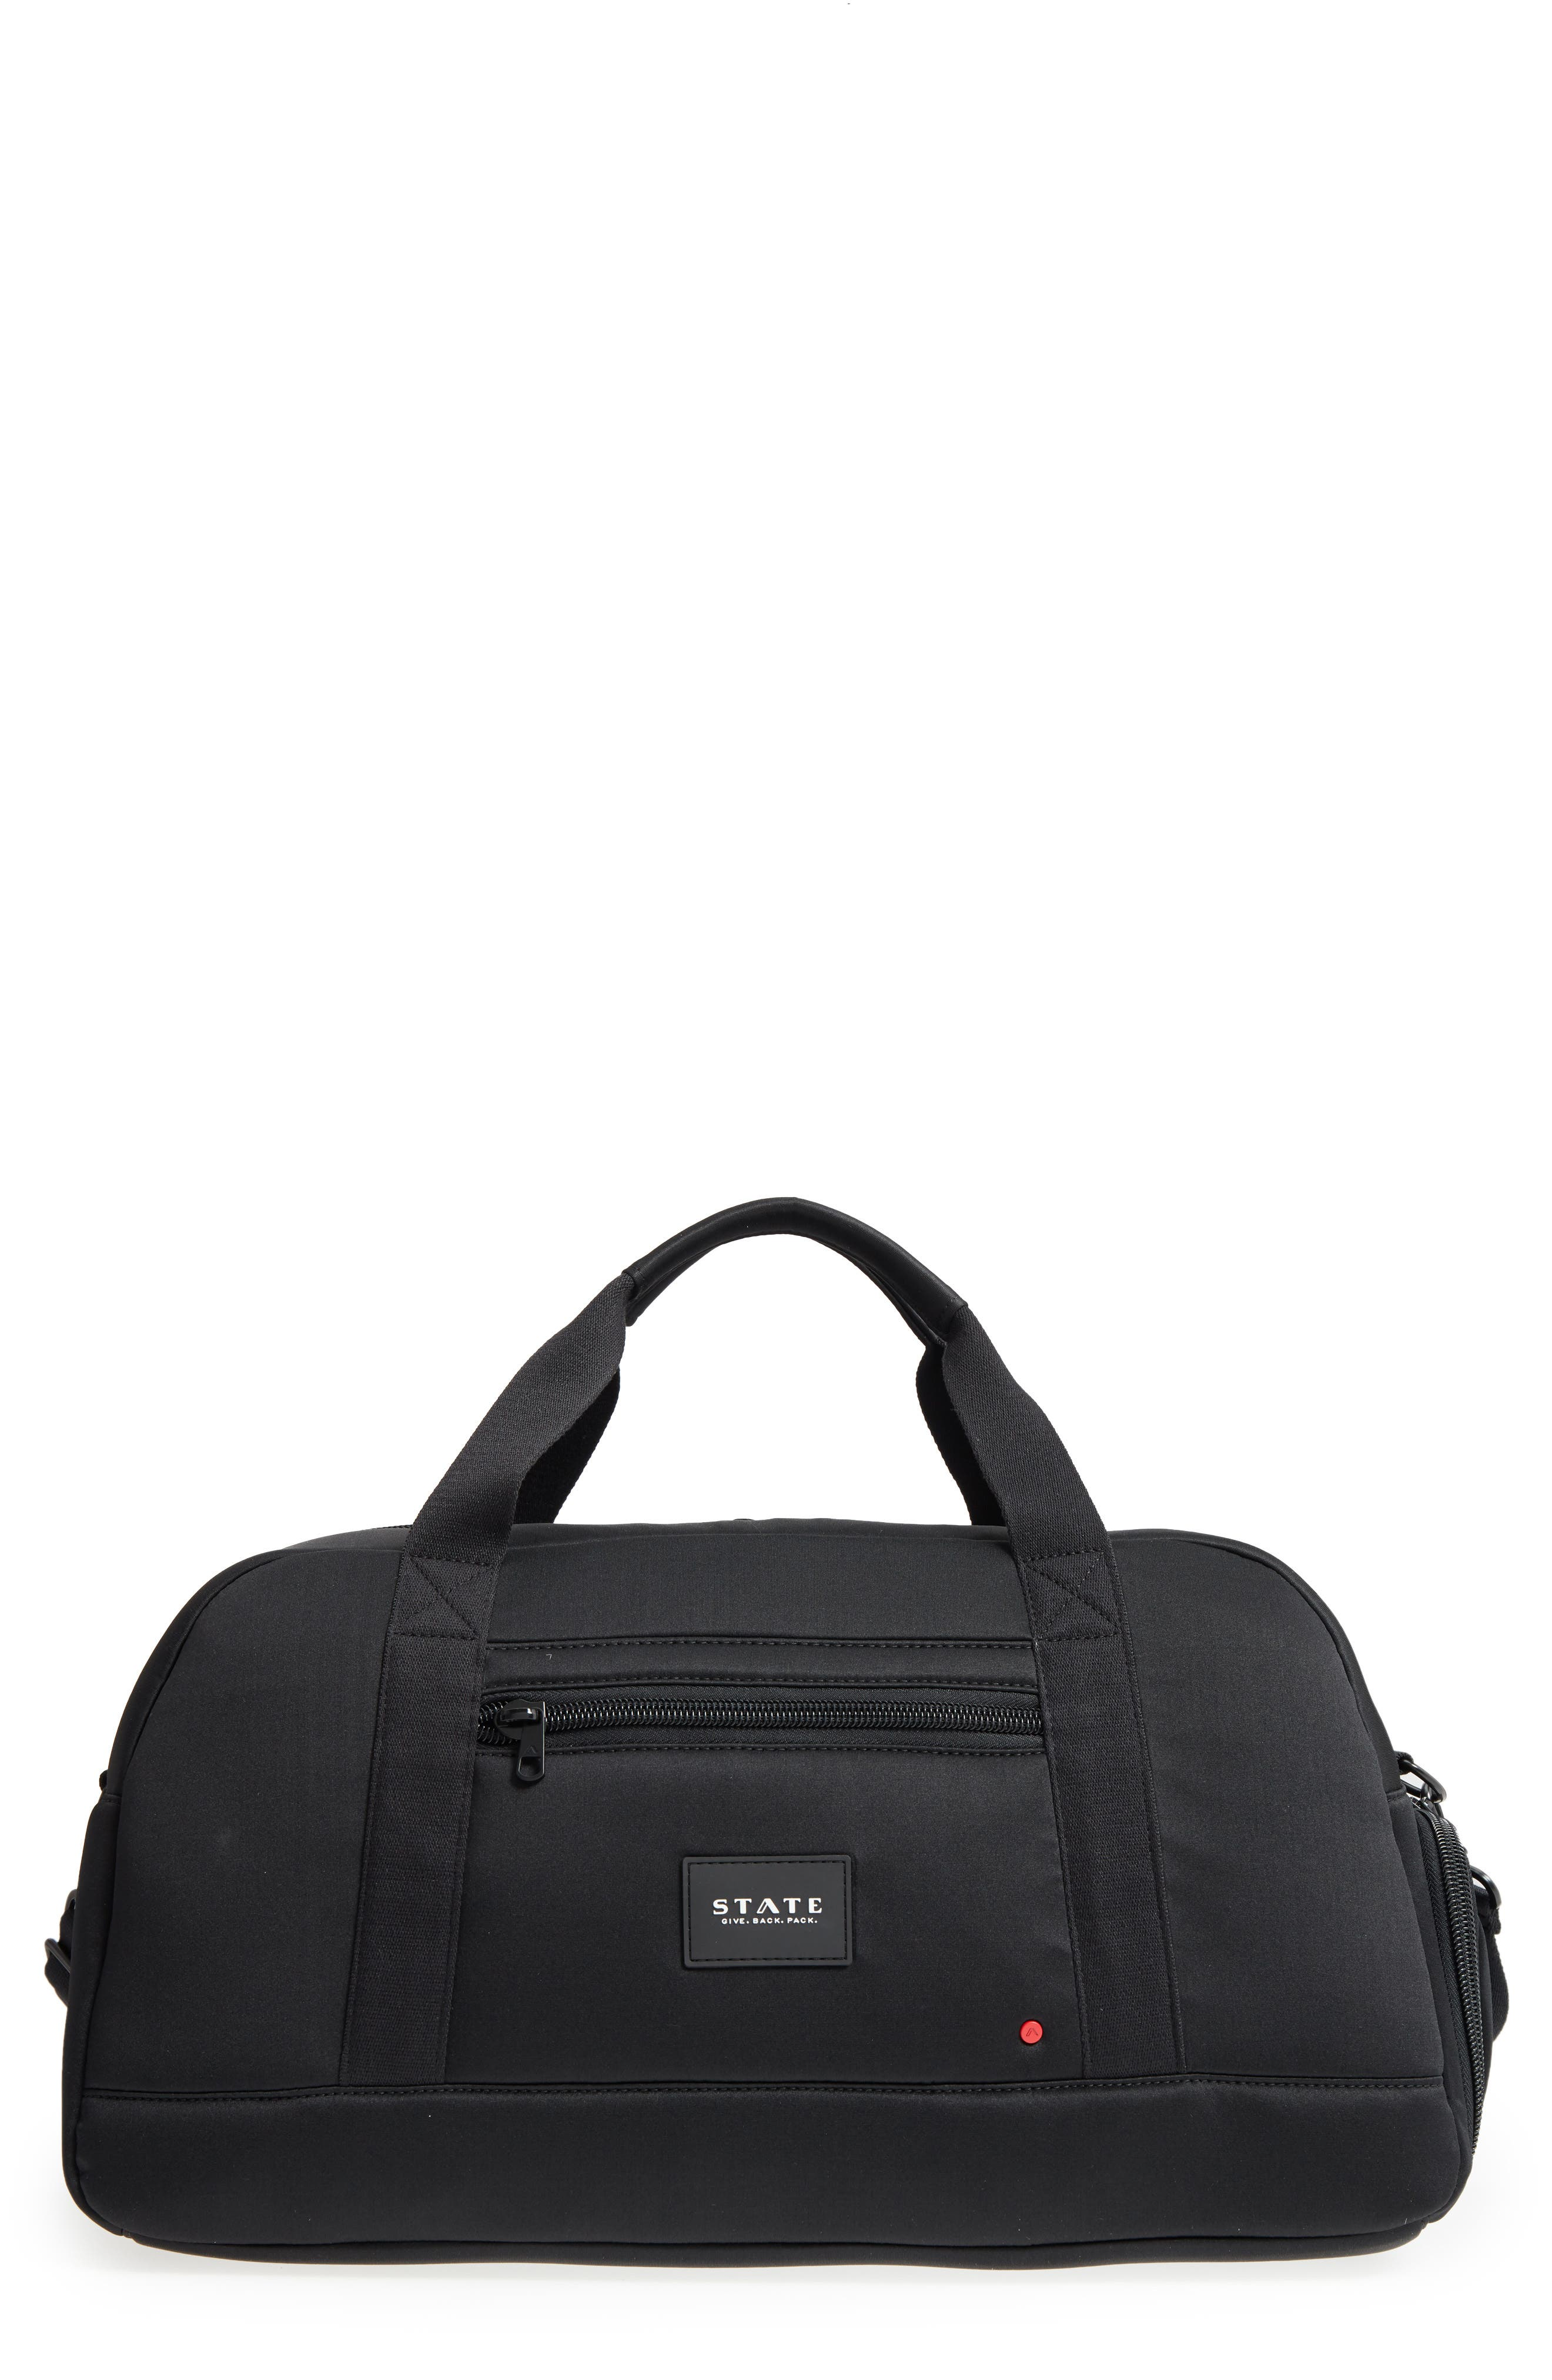 STATE Bags Franklin Neoprene Duffel Bag